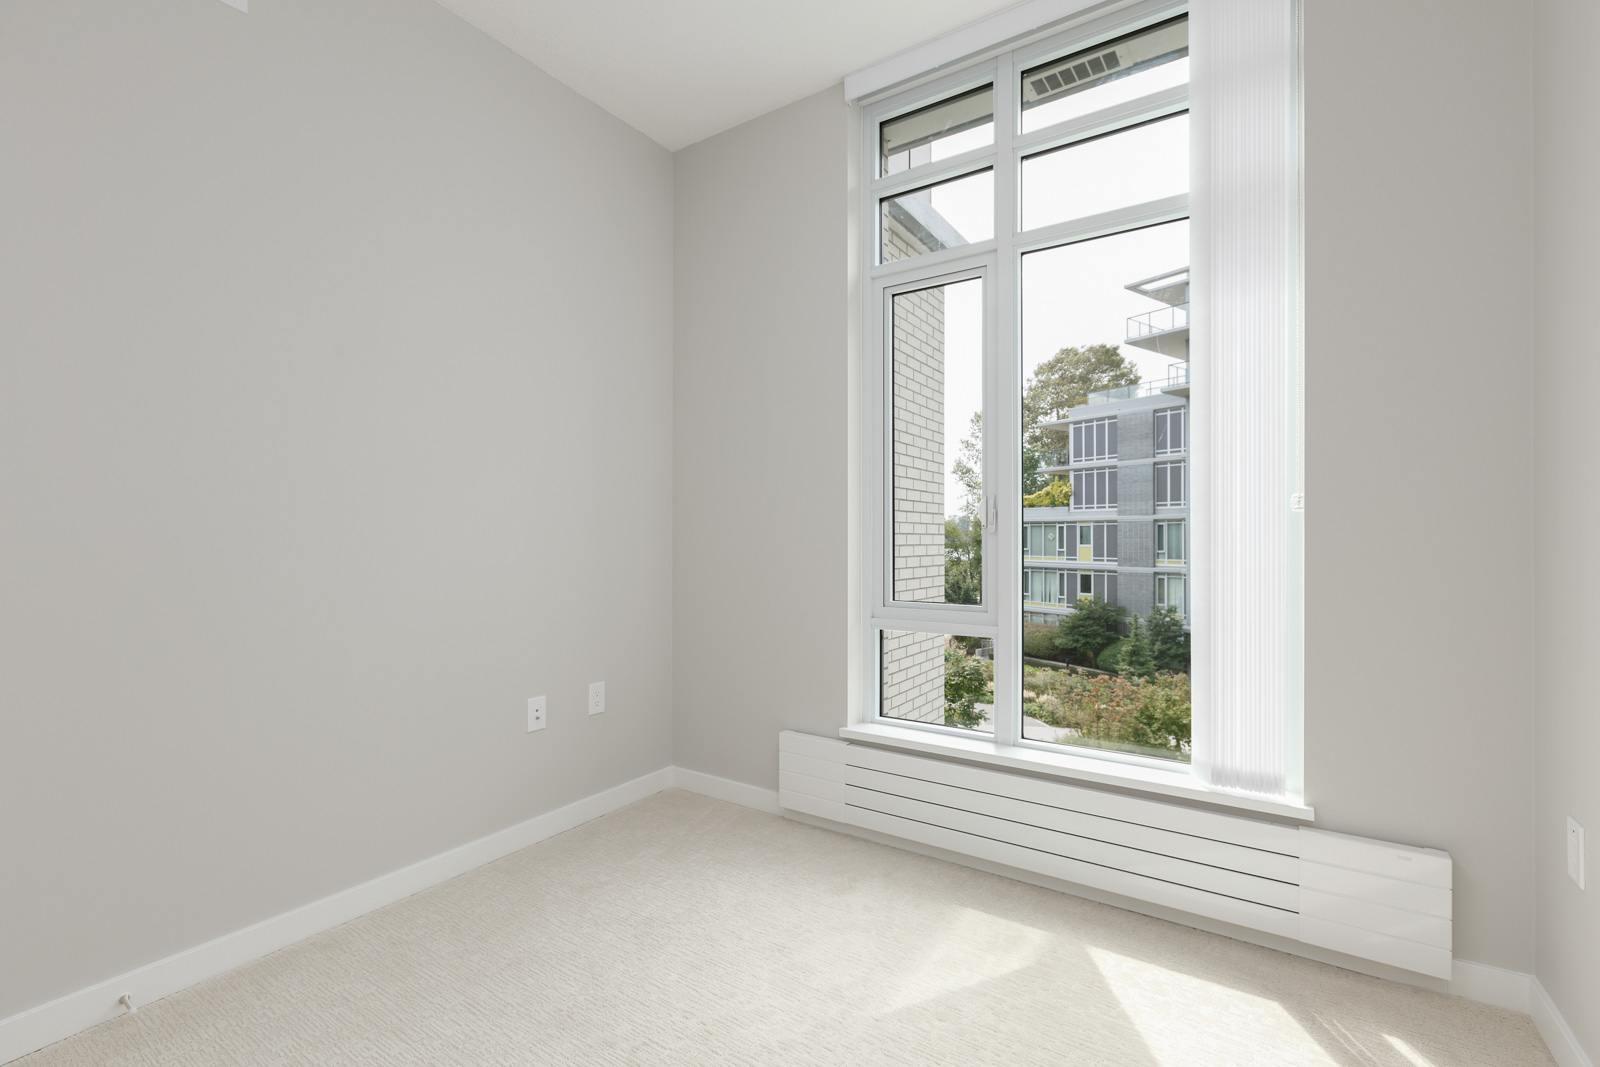 bedroom with large window that allows plenty of natural light to flow in